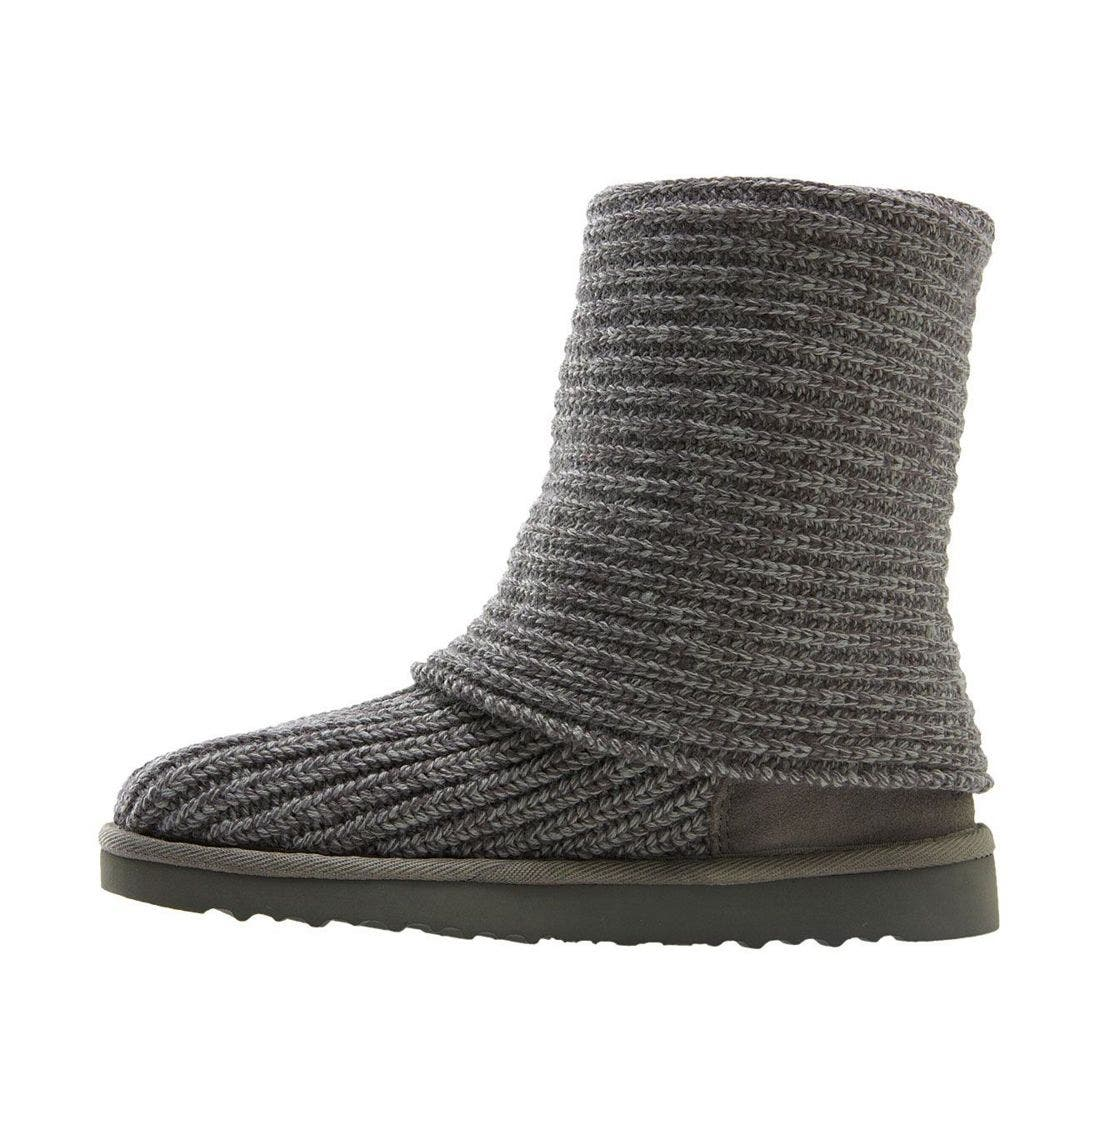 ,                             'Cardy' Classic Knit Boot,                             Alternate thumbnail 77, color,                             GRY